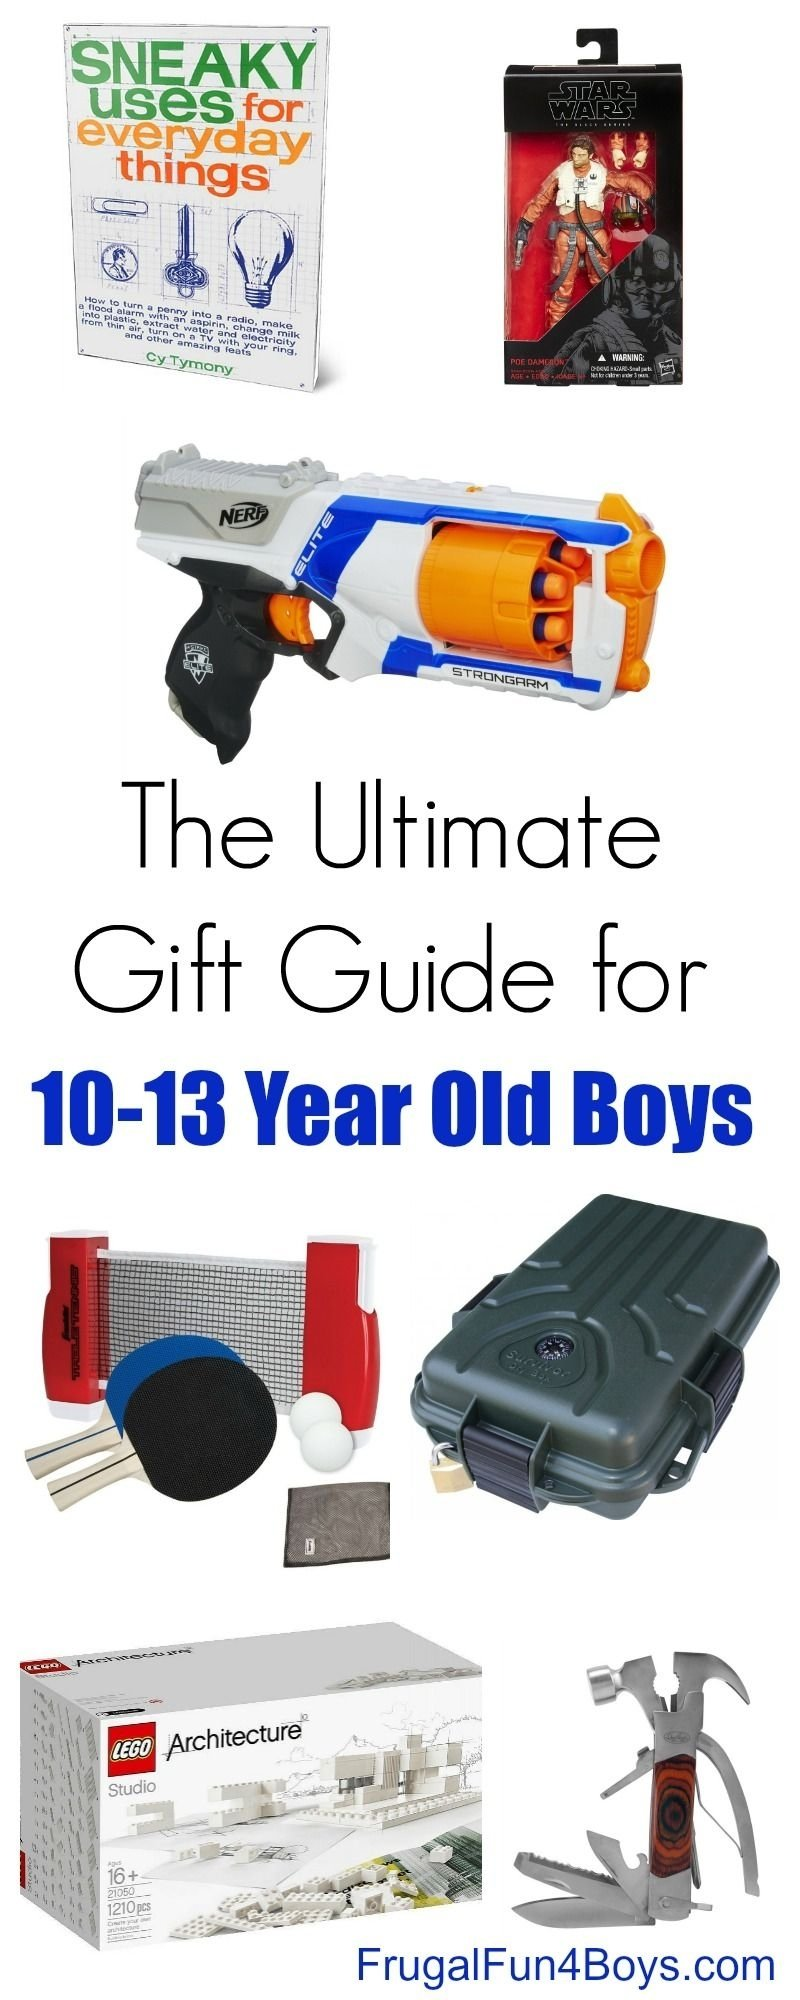 10 Elegant Gift Ideas For 13 Year Old Girl gift ideas for 10 to 13 year old boys gaming gift and books 2020